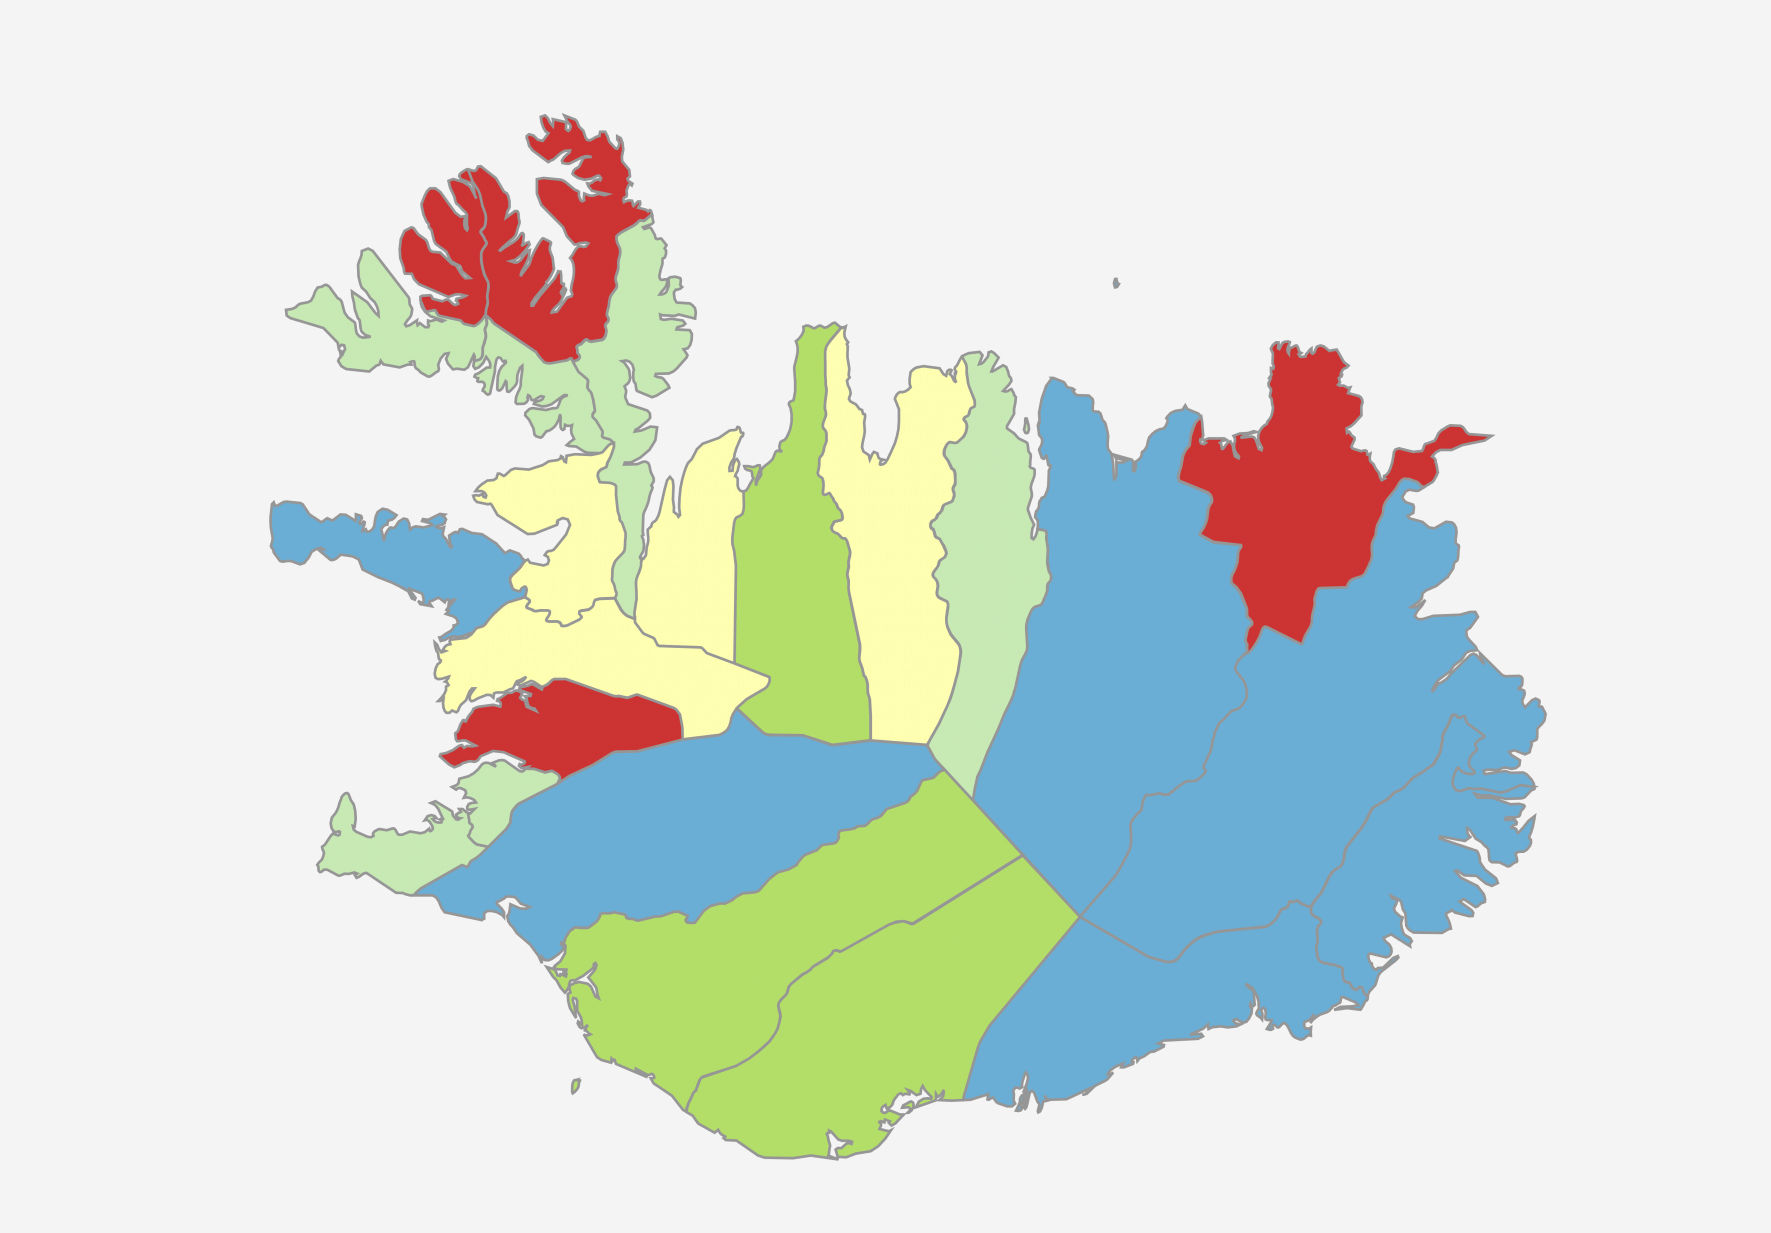 iceland mapchart europe detailed create